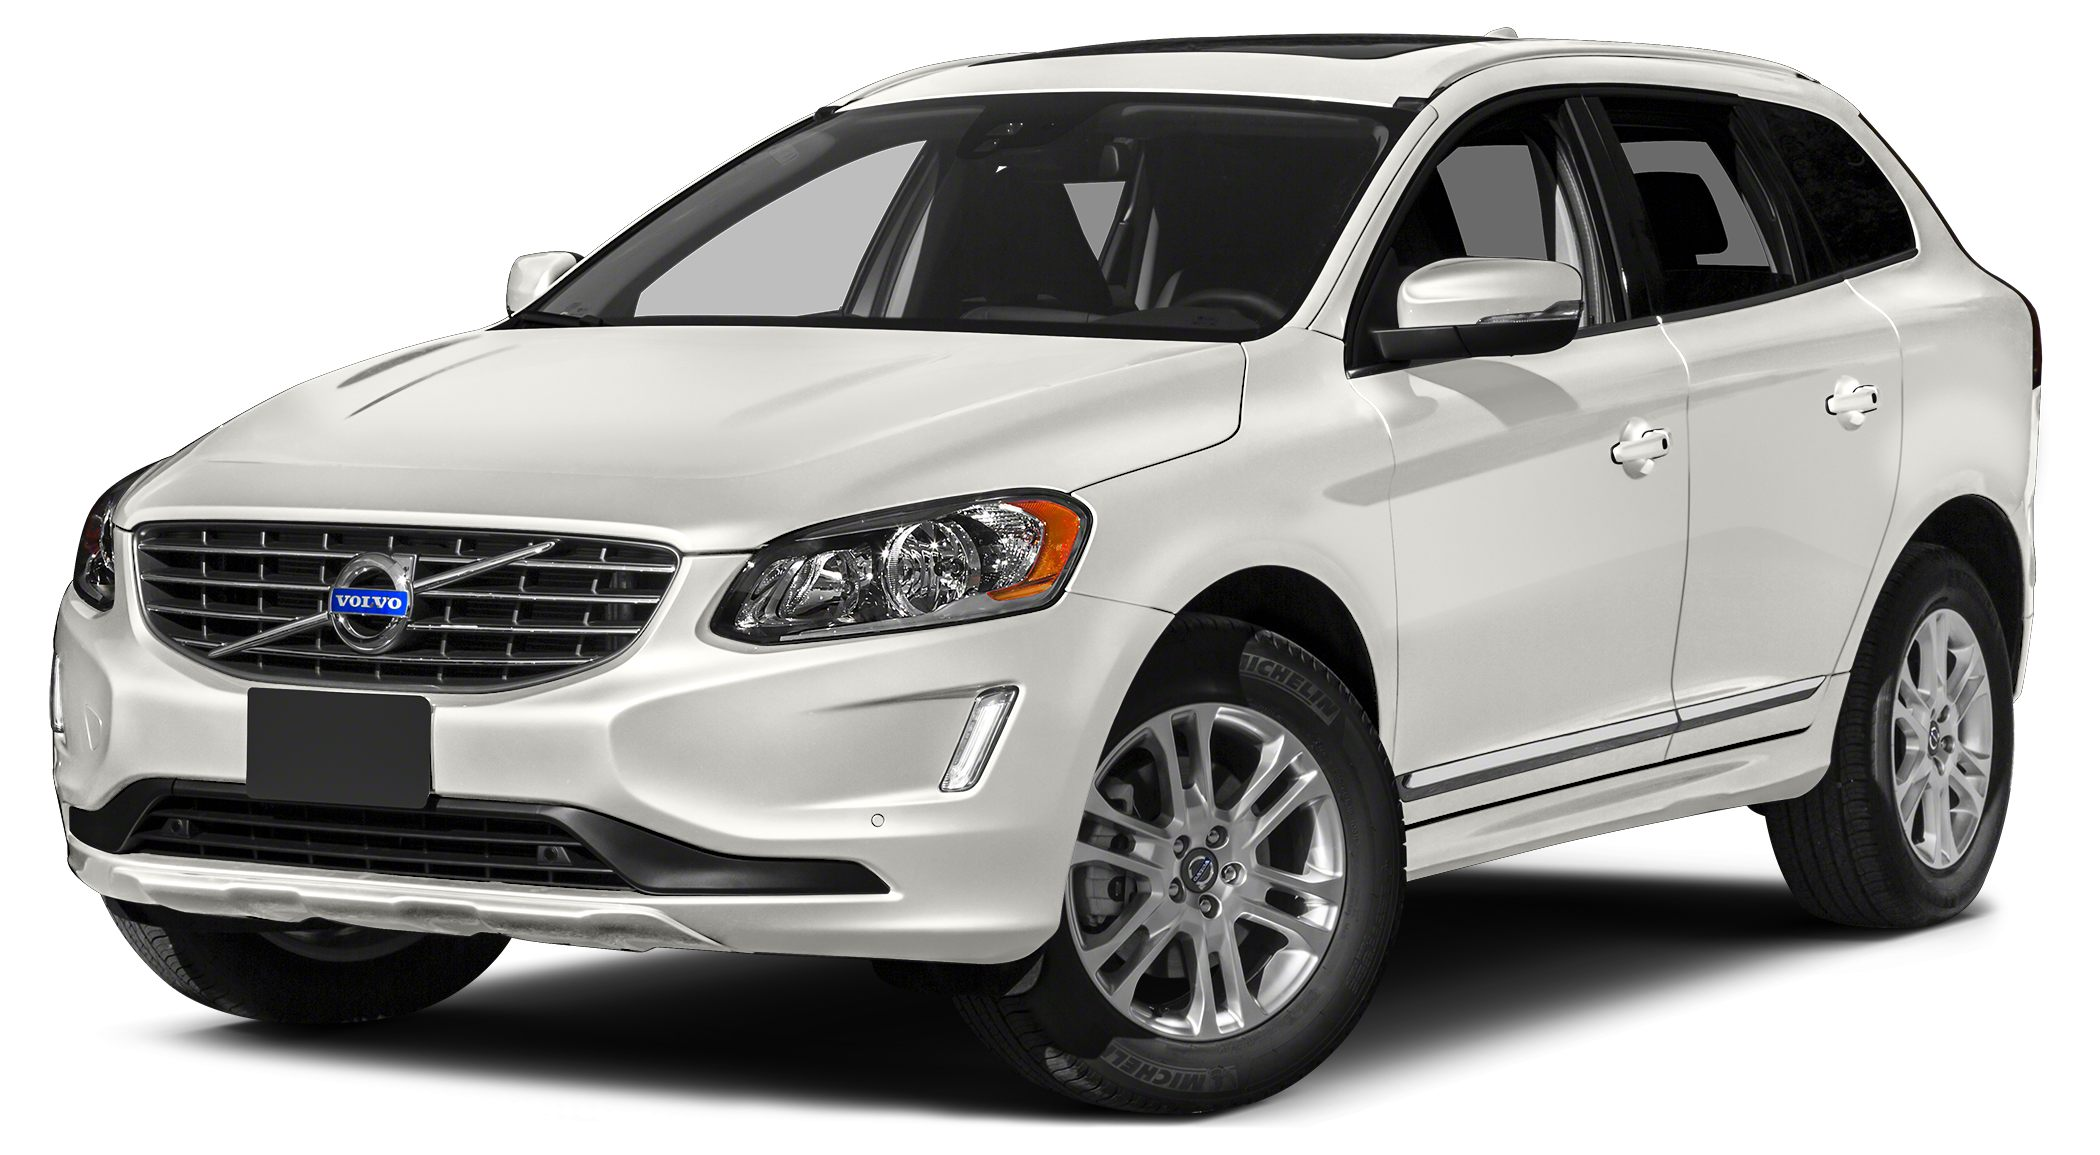 2015 Volvo XC60 T6 Platinum White The SUV youve always wanted Your lucky day If youre looking